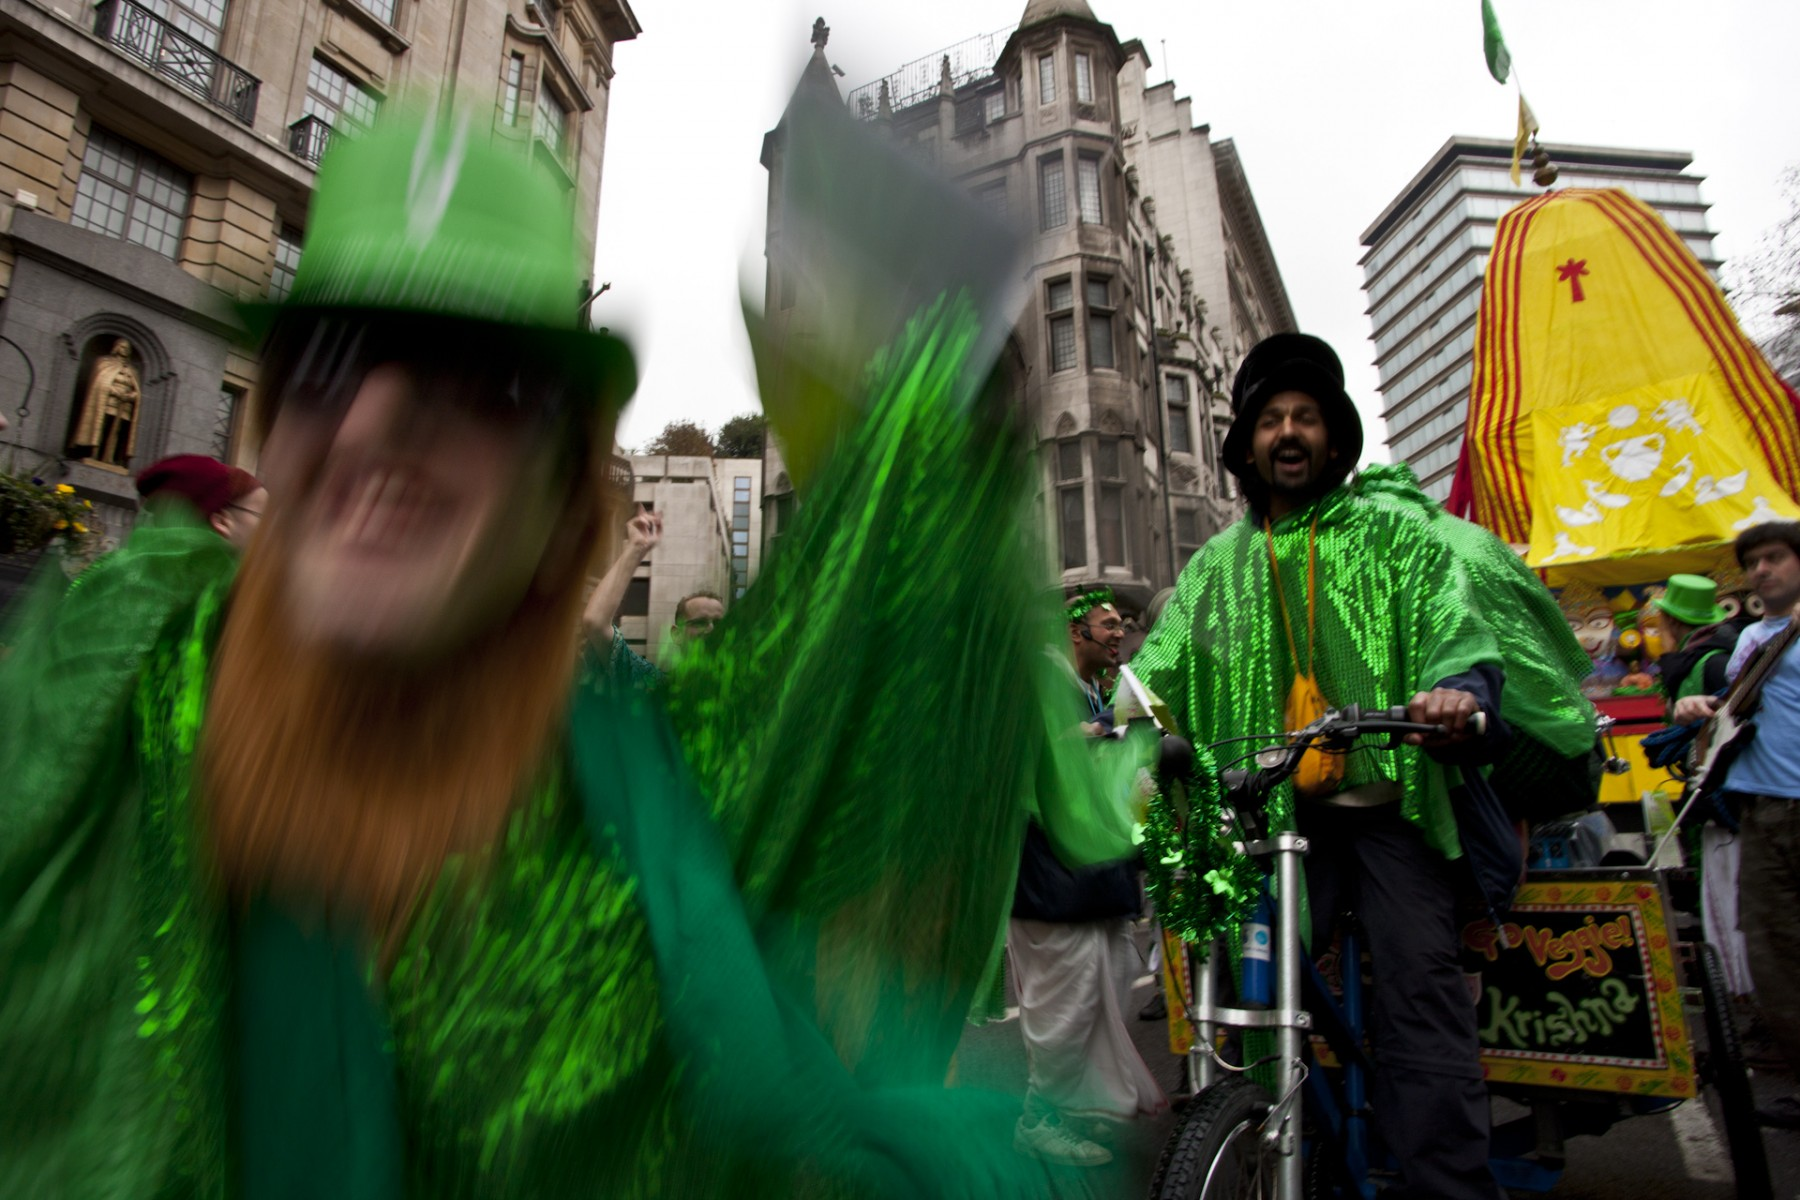 St. Patrick's Day Street Carnival, London